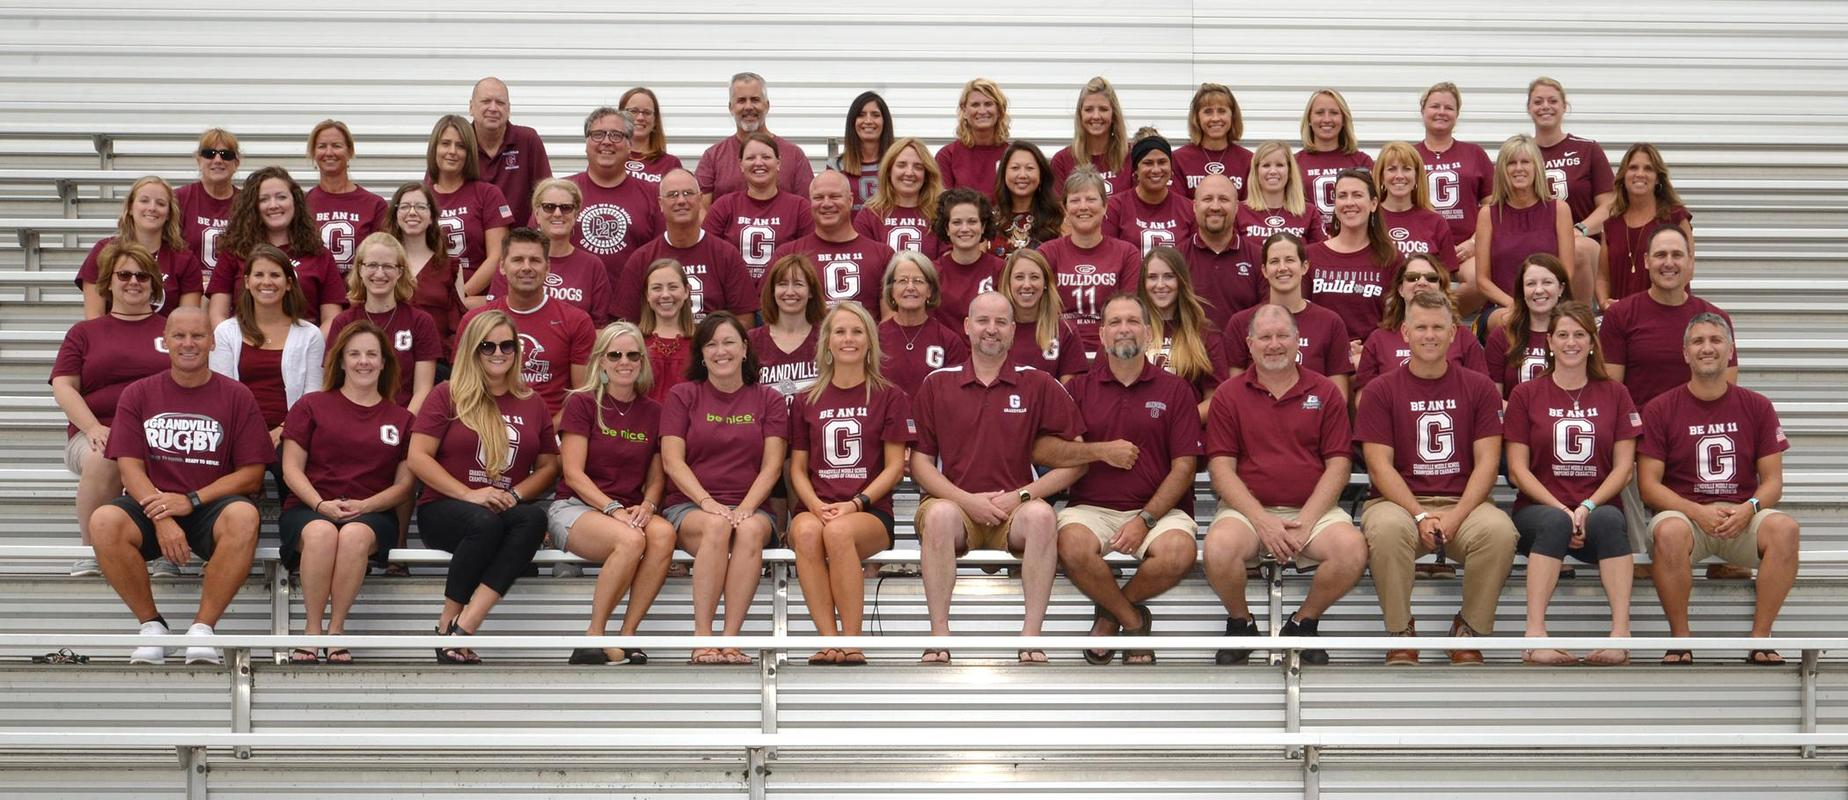 photo of staff of GMS sitting on bleachers in maroon shirts